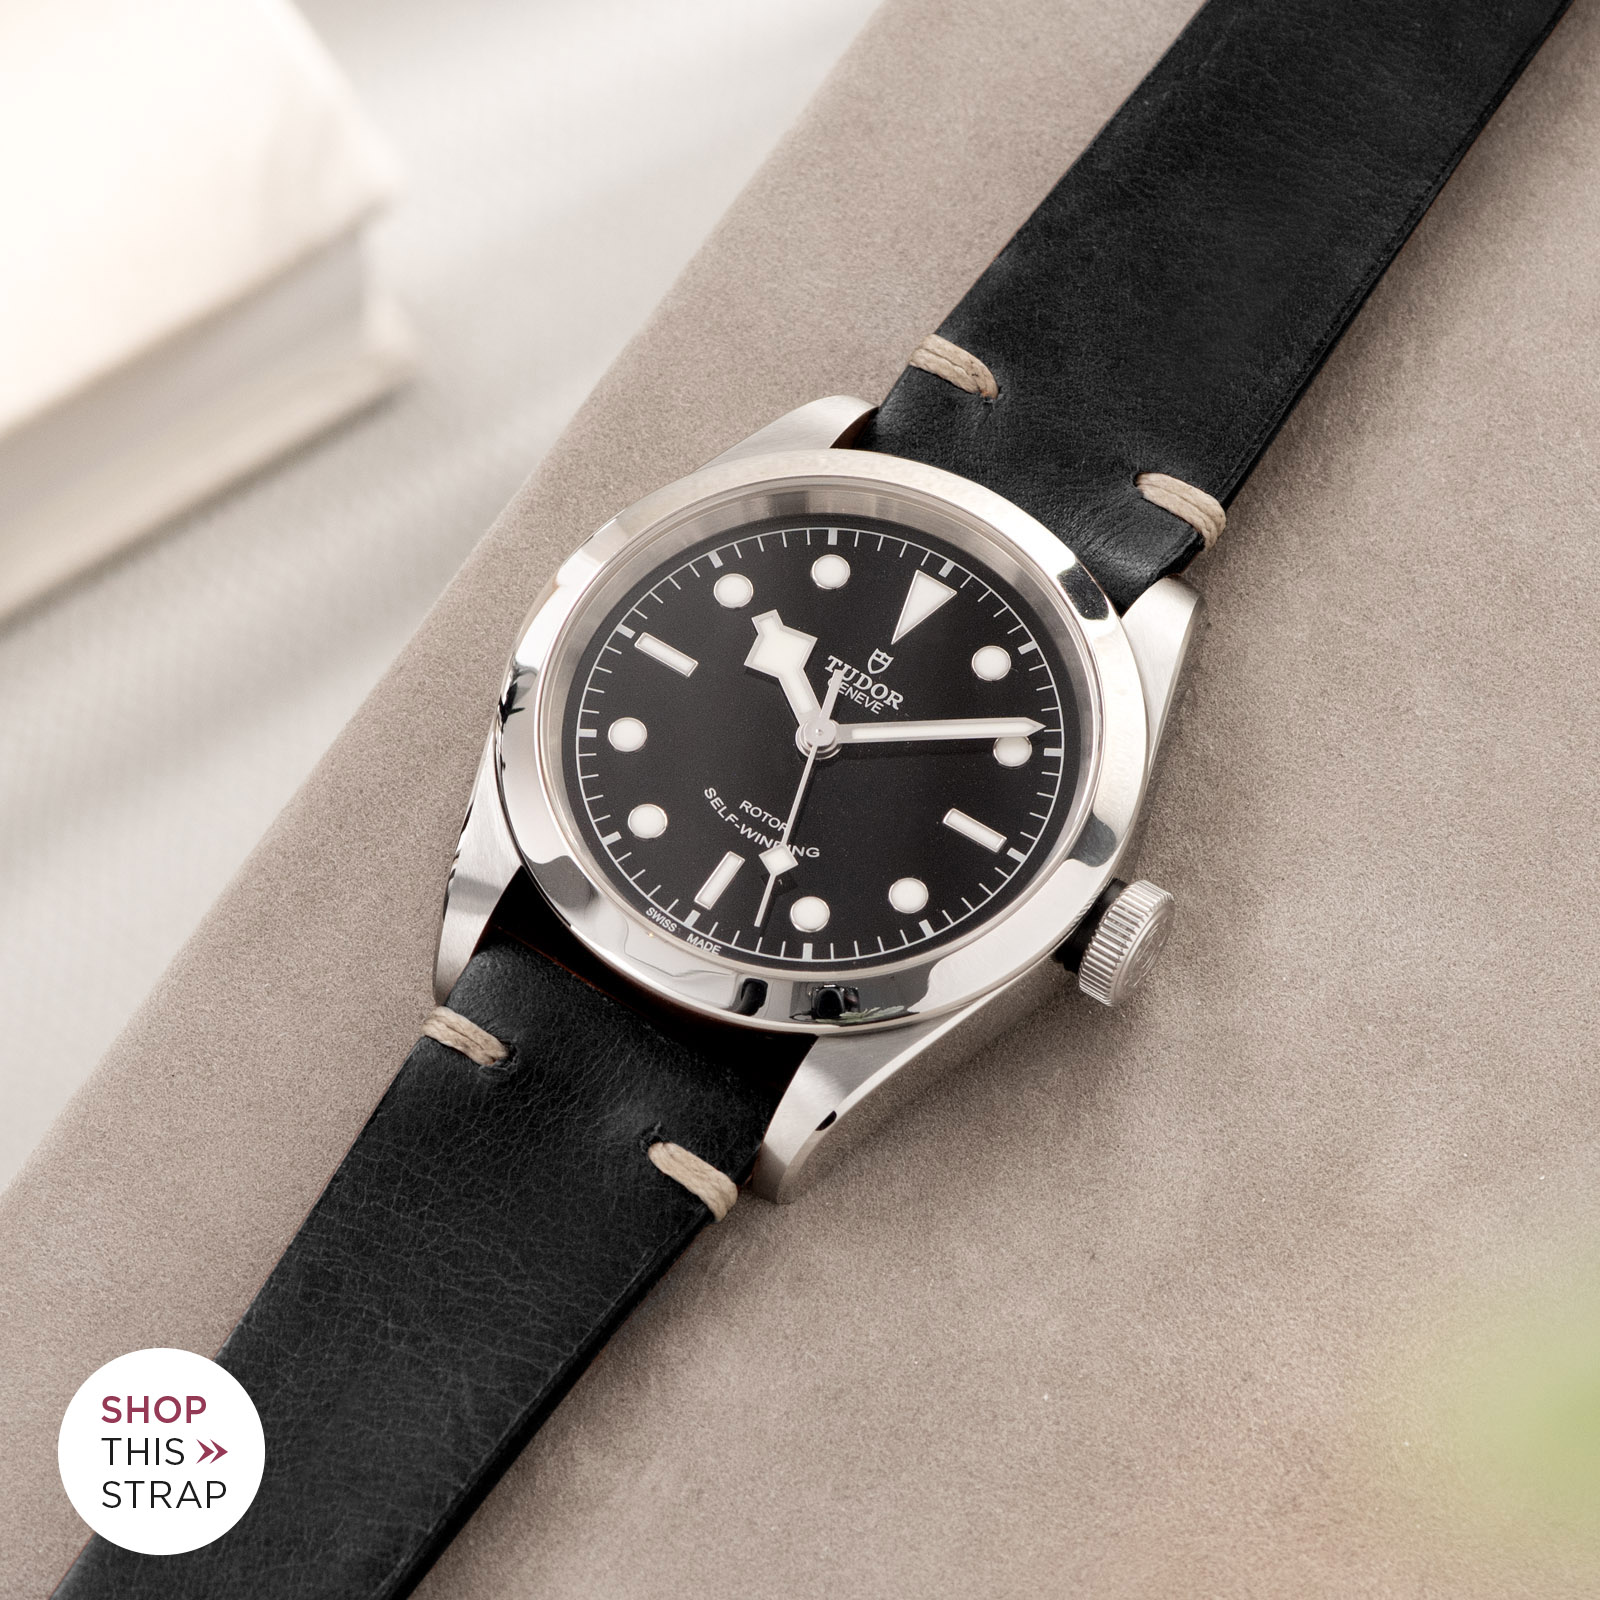 Bulang and Sons_Strap Guide_Tudor Heritage BlackBay 411_Black Leather Watch Strap